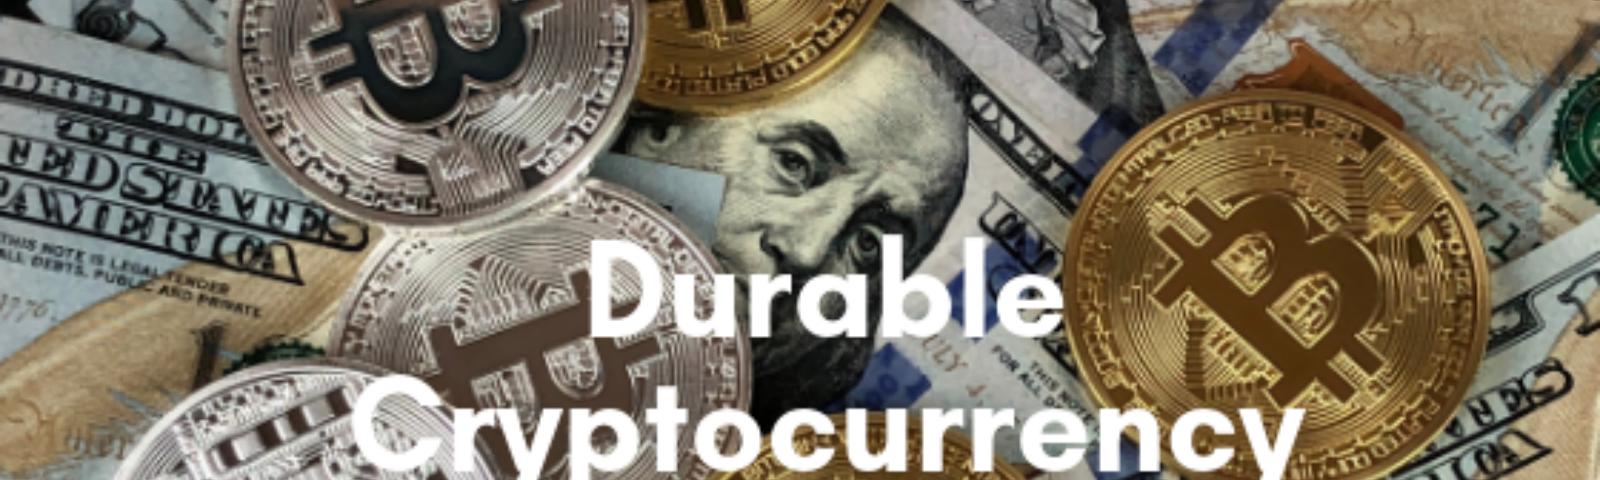 How Durable are Dedicated Cryptocurrency Funds? - By